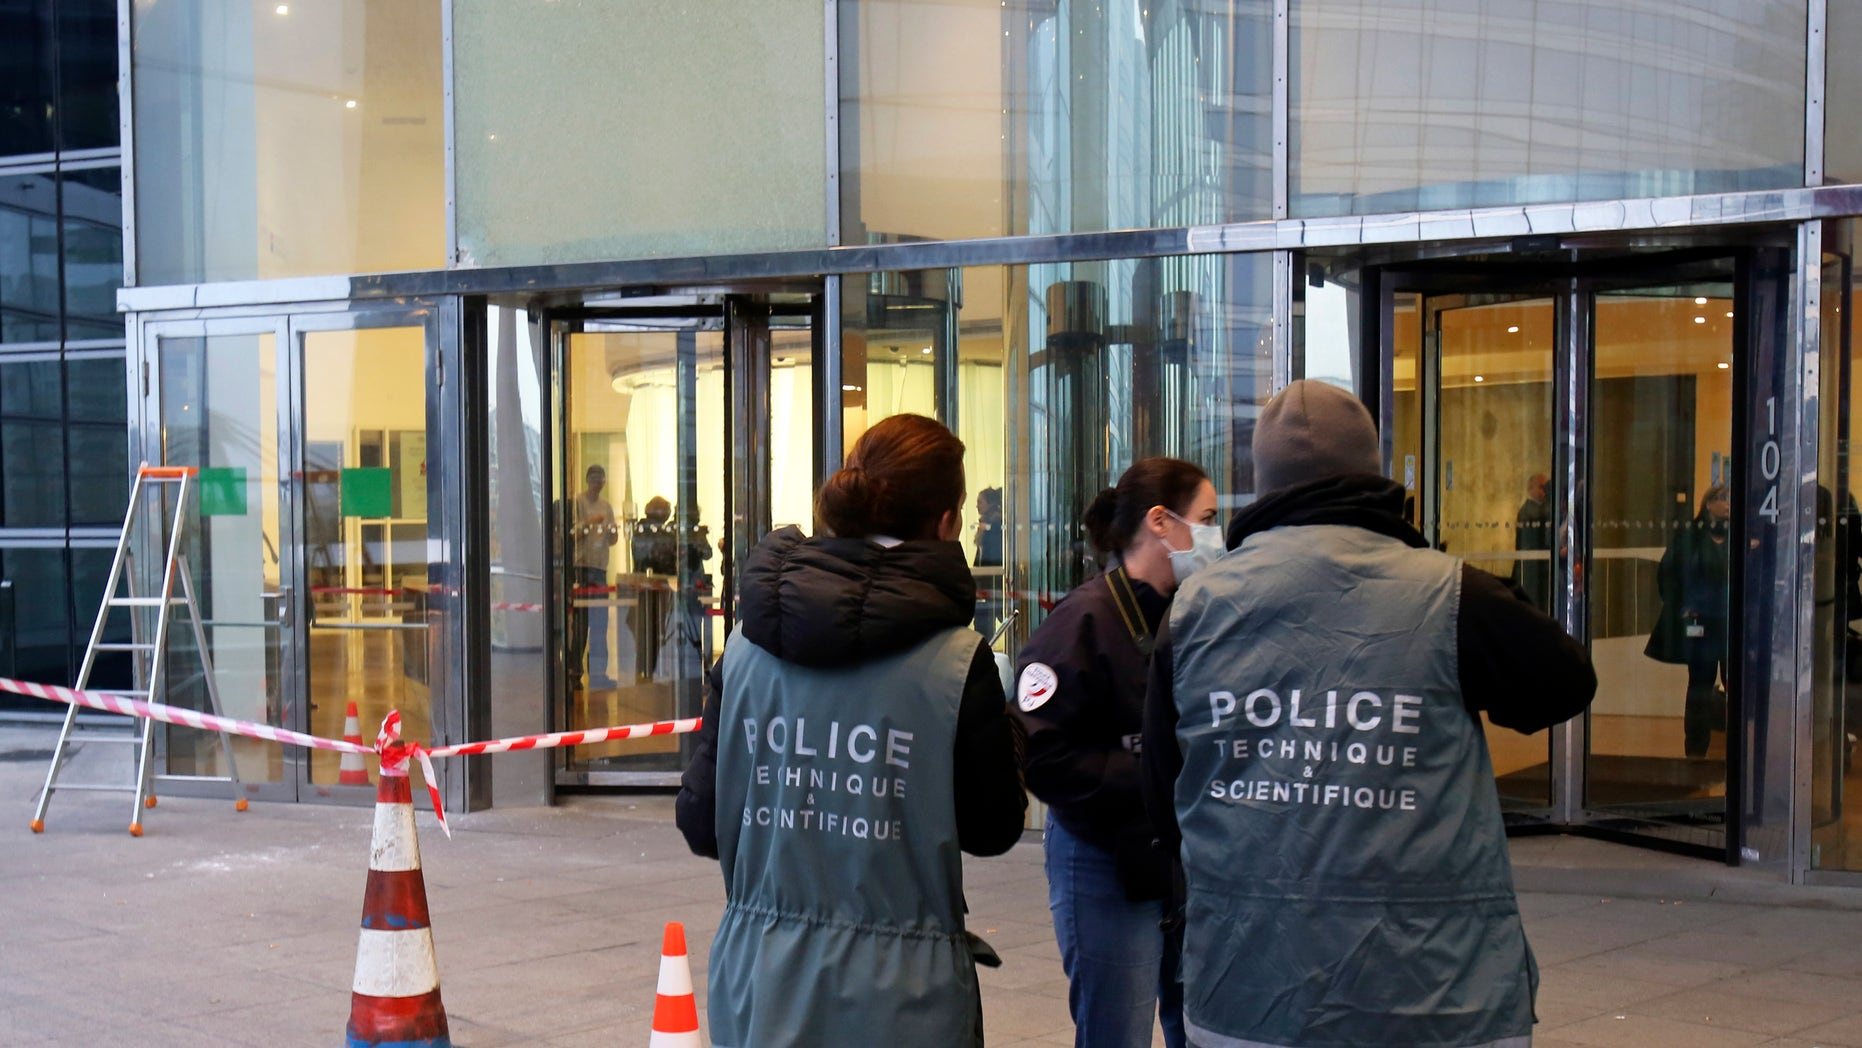 Nov. 18, 2013 - Police officers work at the entrance of the Societe General Bank headquarters in La Defense business district, west of Paris. Soon after a shooting at newspaper Liberation, shots were fired at the headquarters of a major French bank west of Paris, and a gunman briefly took a man hostage nearby. The Paris police headquarters said that it is not clear whether the three incidents are linked, but that authorities are increasing security in all three places as well as media offices around Paris.